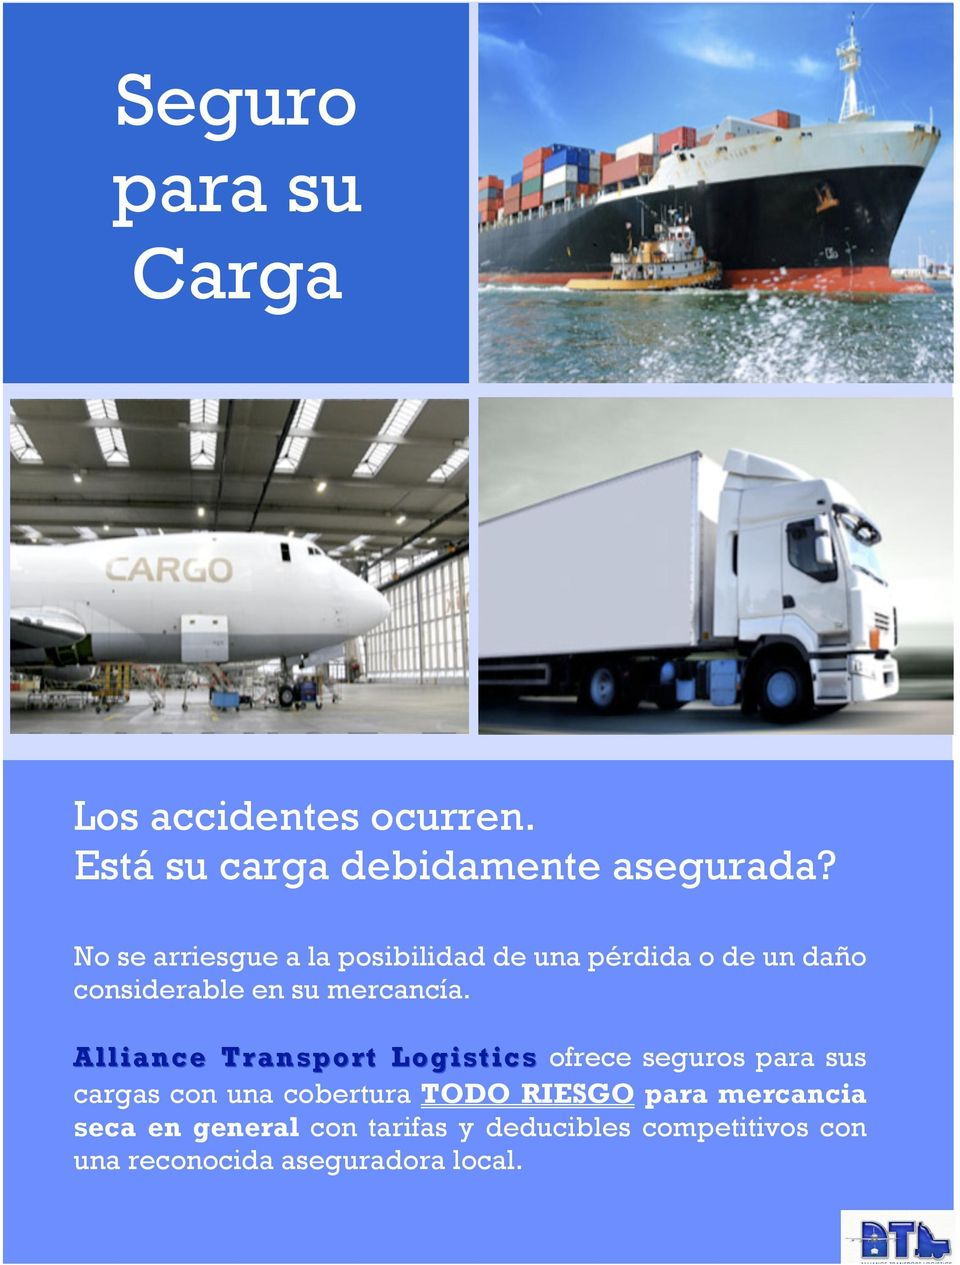 Alliance Transport Logistics Alliance Transport Logistics ofrece seguros para sus cargas con una